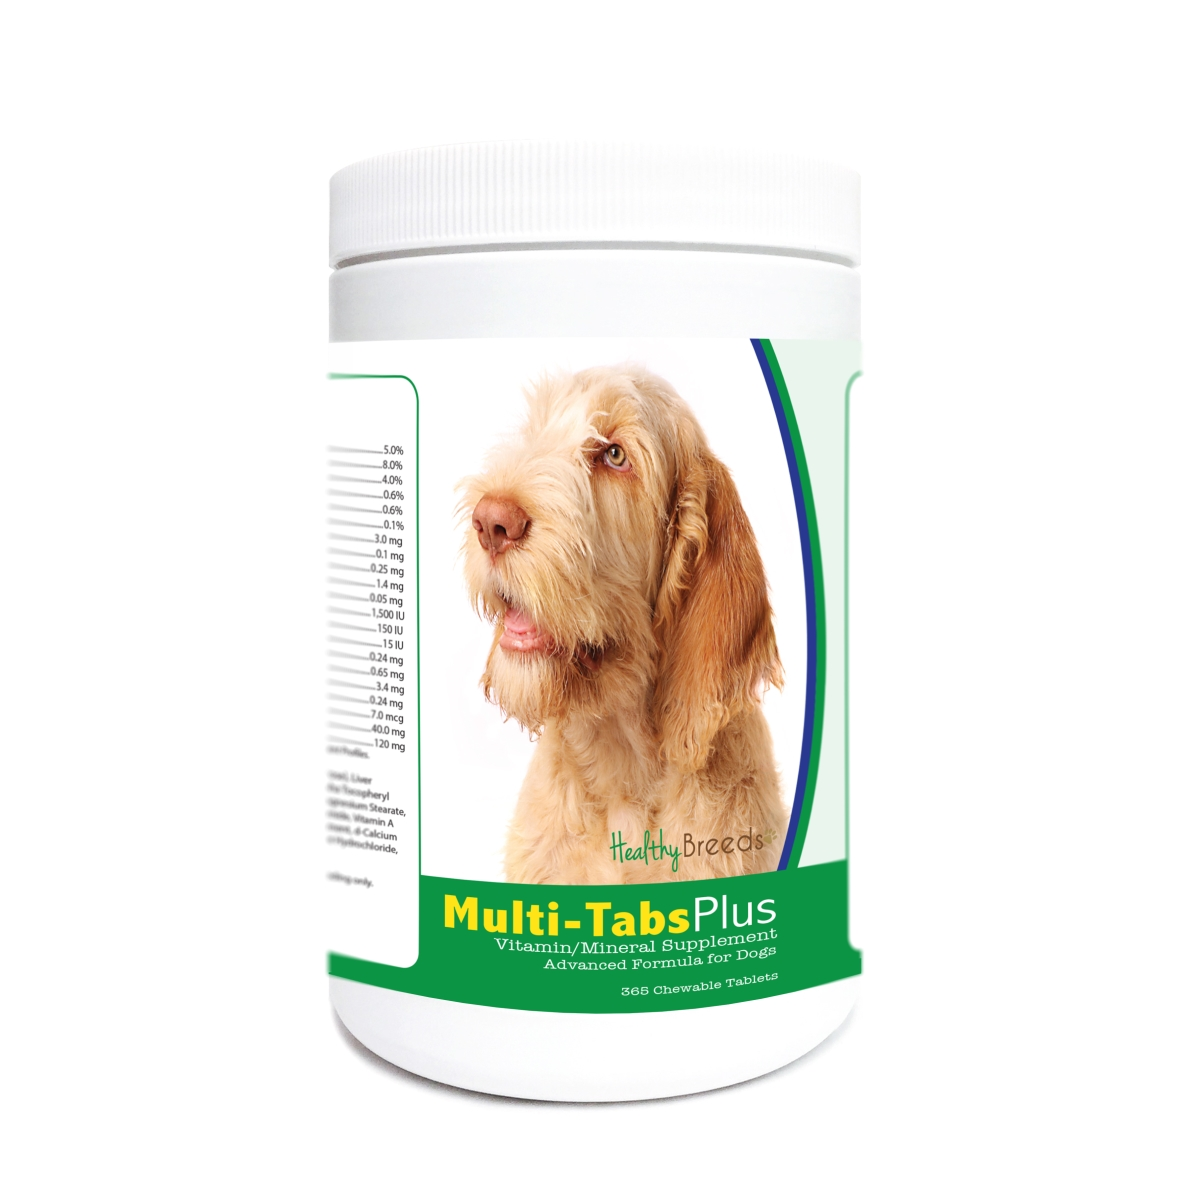 Healthy Breeds 840235172727 Spinoni Italiani Multi-Tabs Plus Chewable Tablets - 365 Count